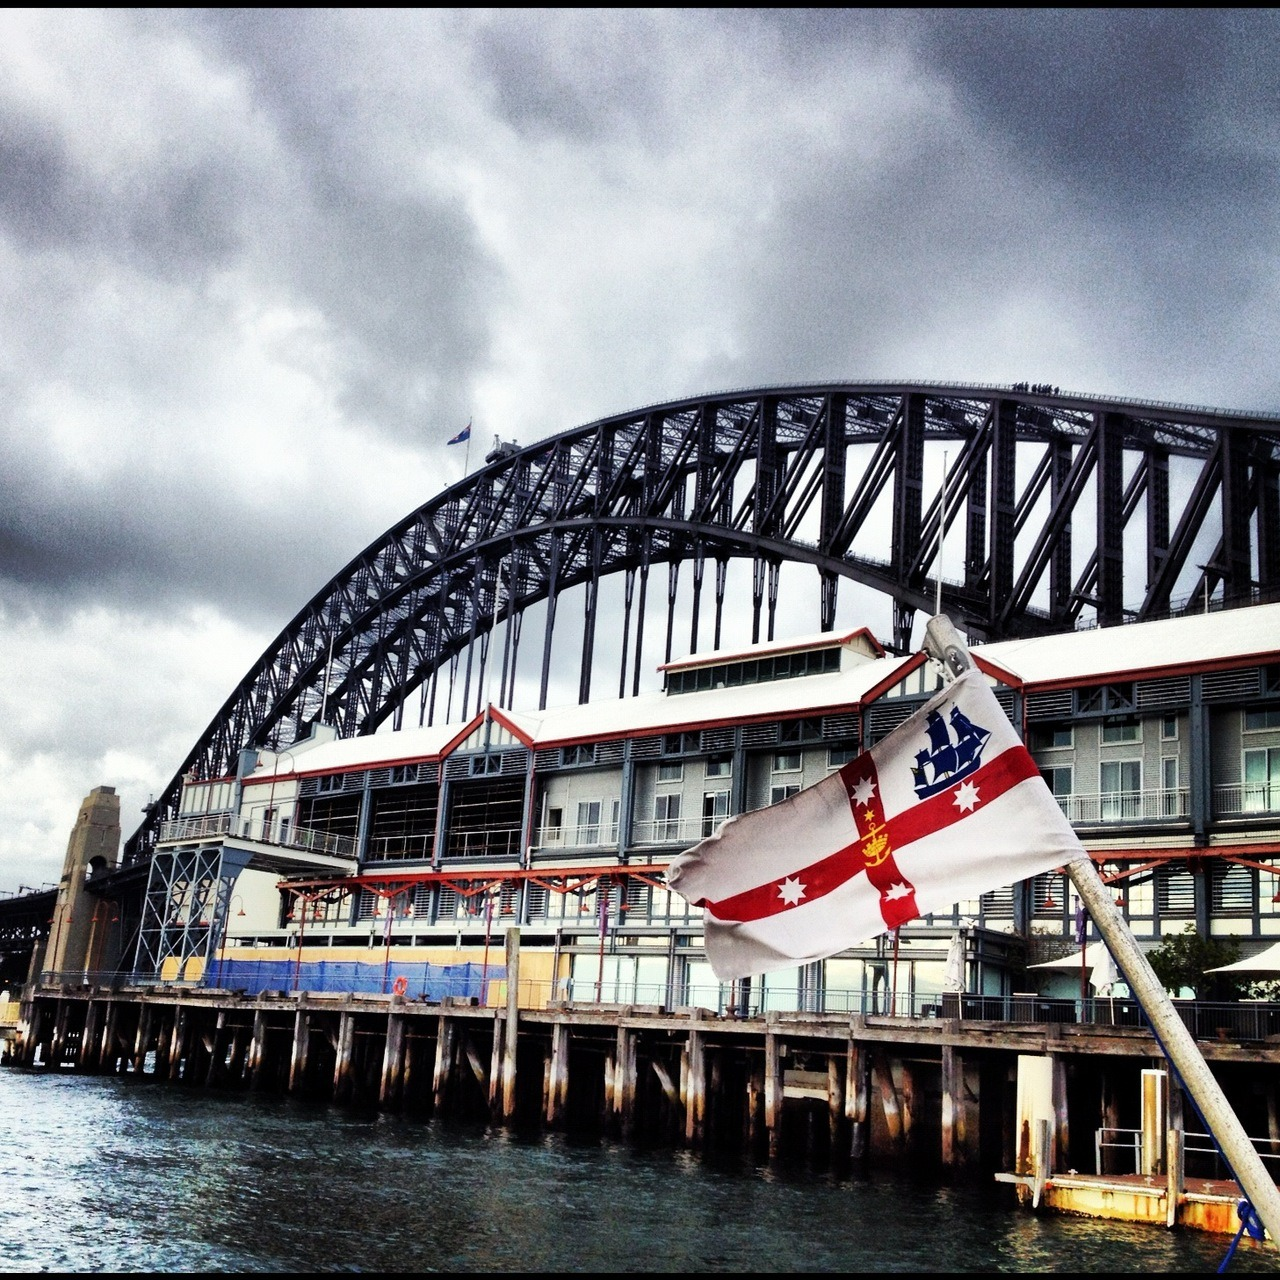 Walsh Bay, Sydney, New South Wales, Australia